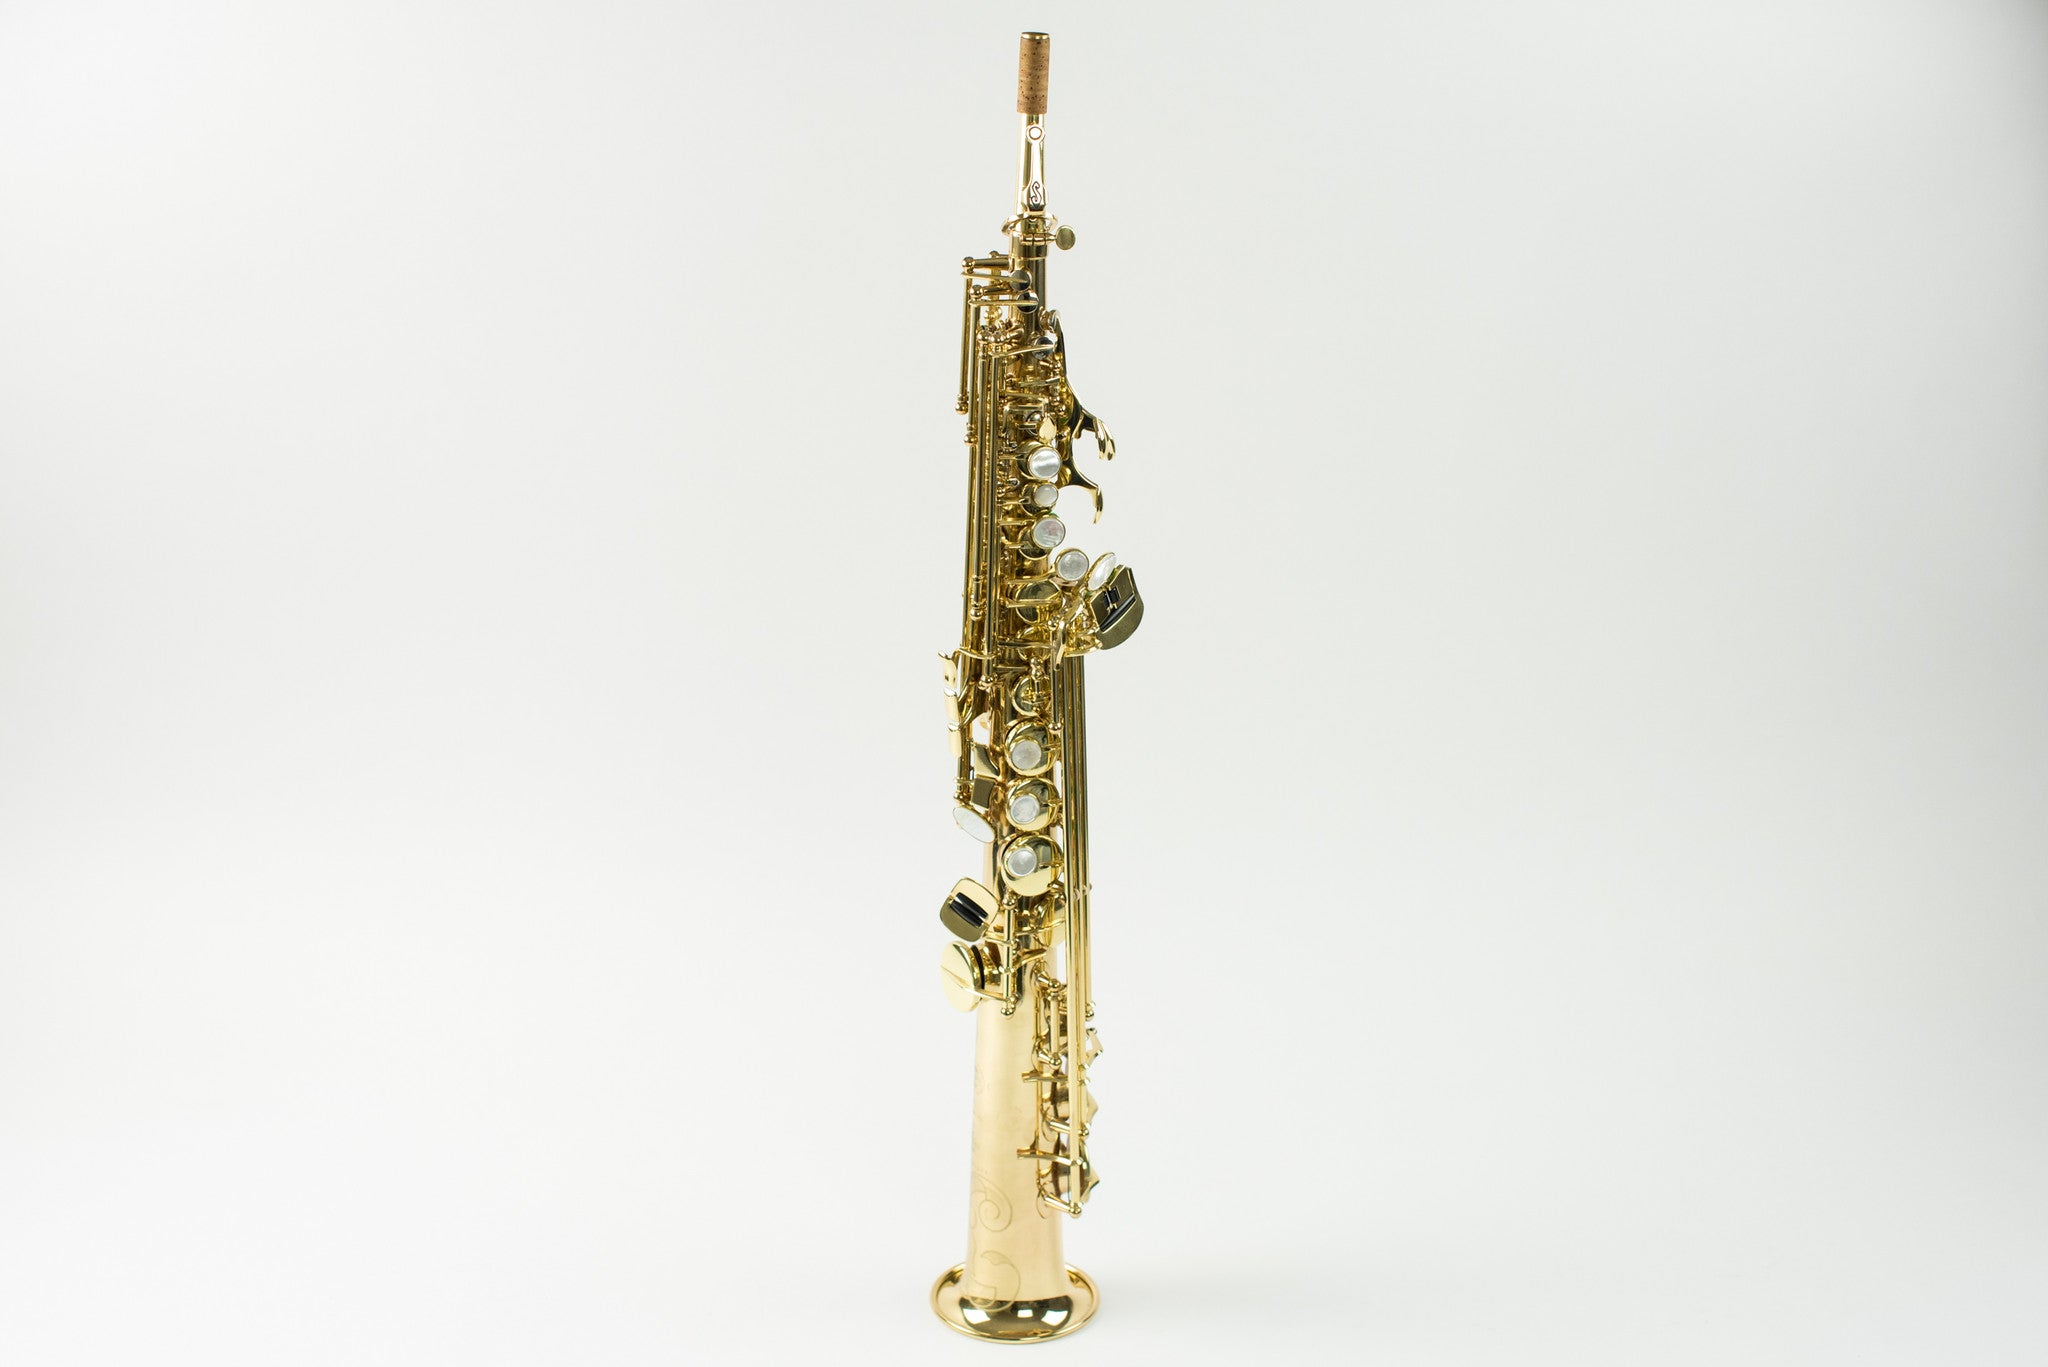 Selmer Series III Soprano Saxophone, Near Mint Condition